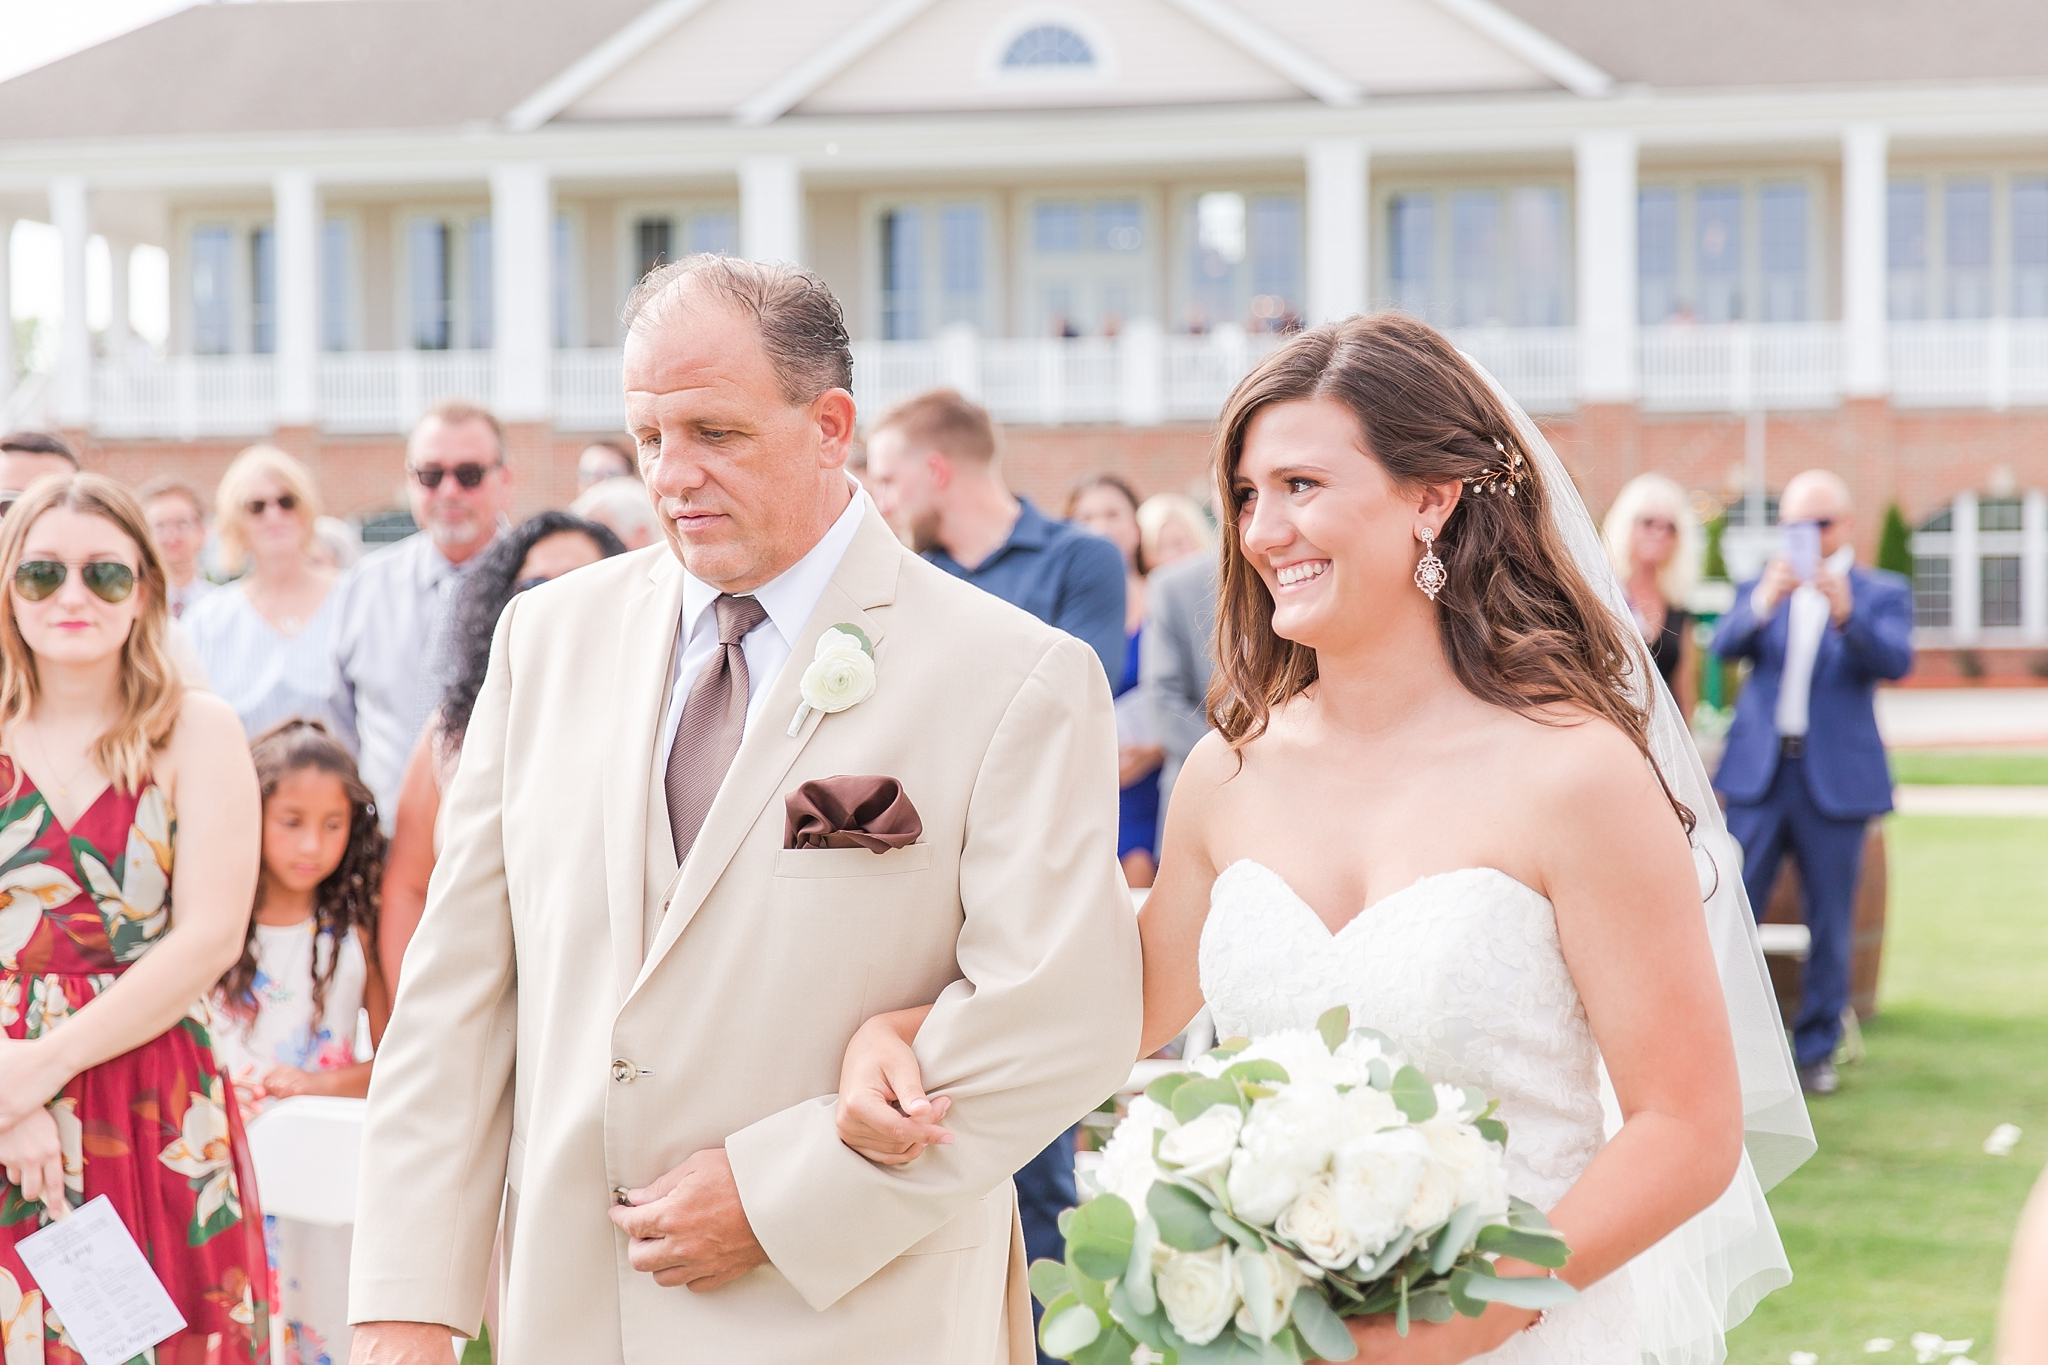 candid-timeless-wedding-photos-at-the-captains-club-in-grand-blanc-michigan-by-courtney-carolyn-photography_0038.jpg